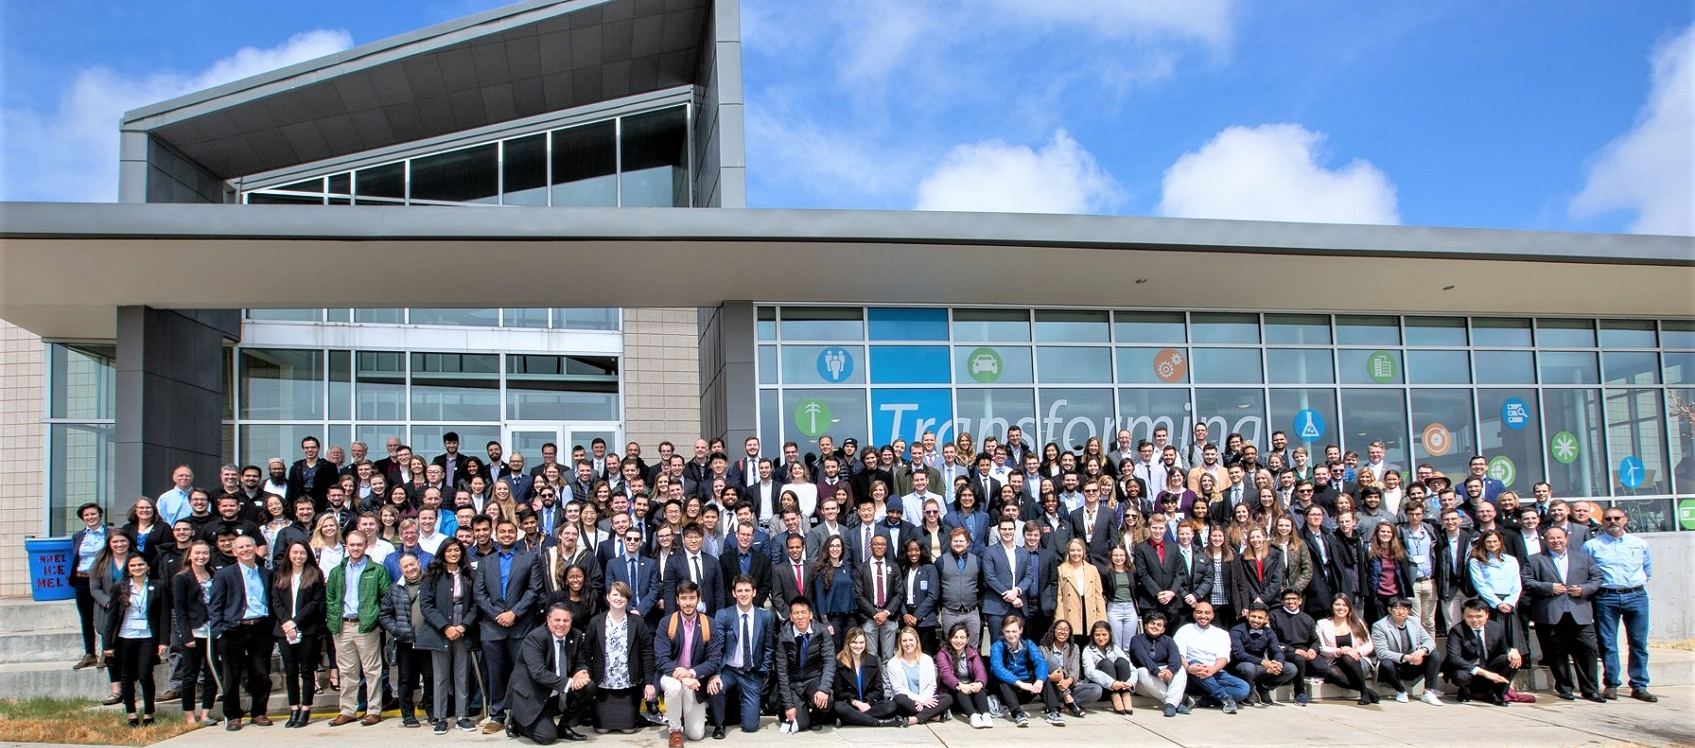 Photo of about 100 participants at the U.S. Department of Energy Solar Decathlon.